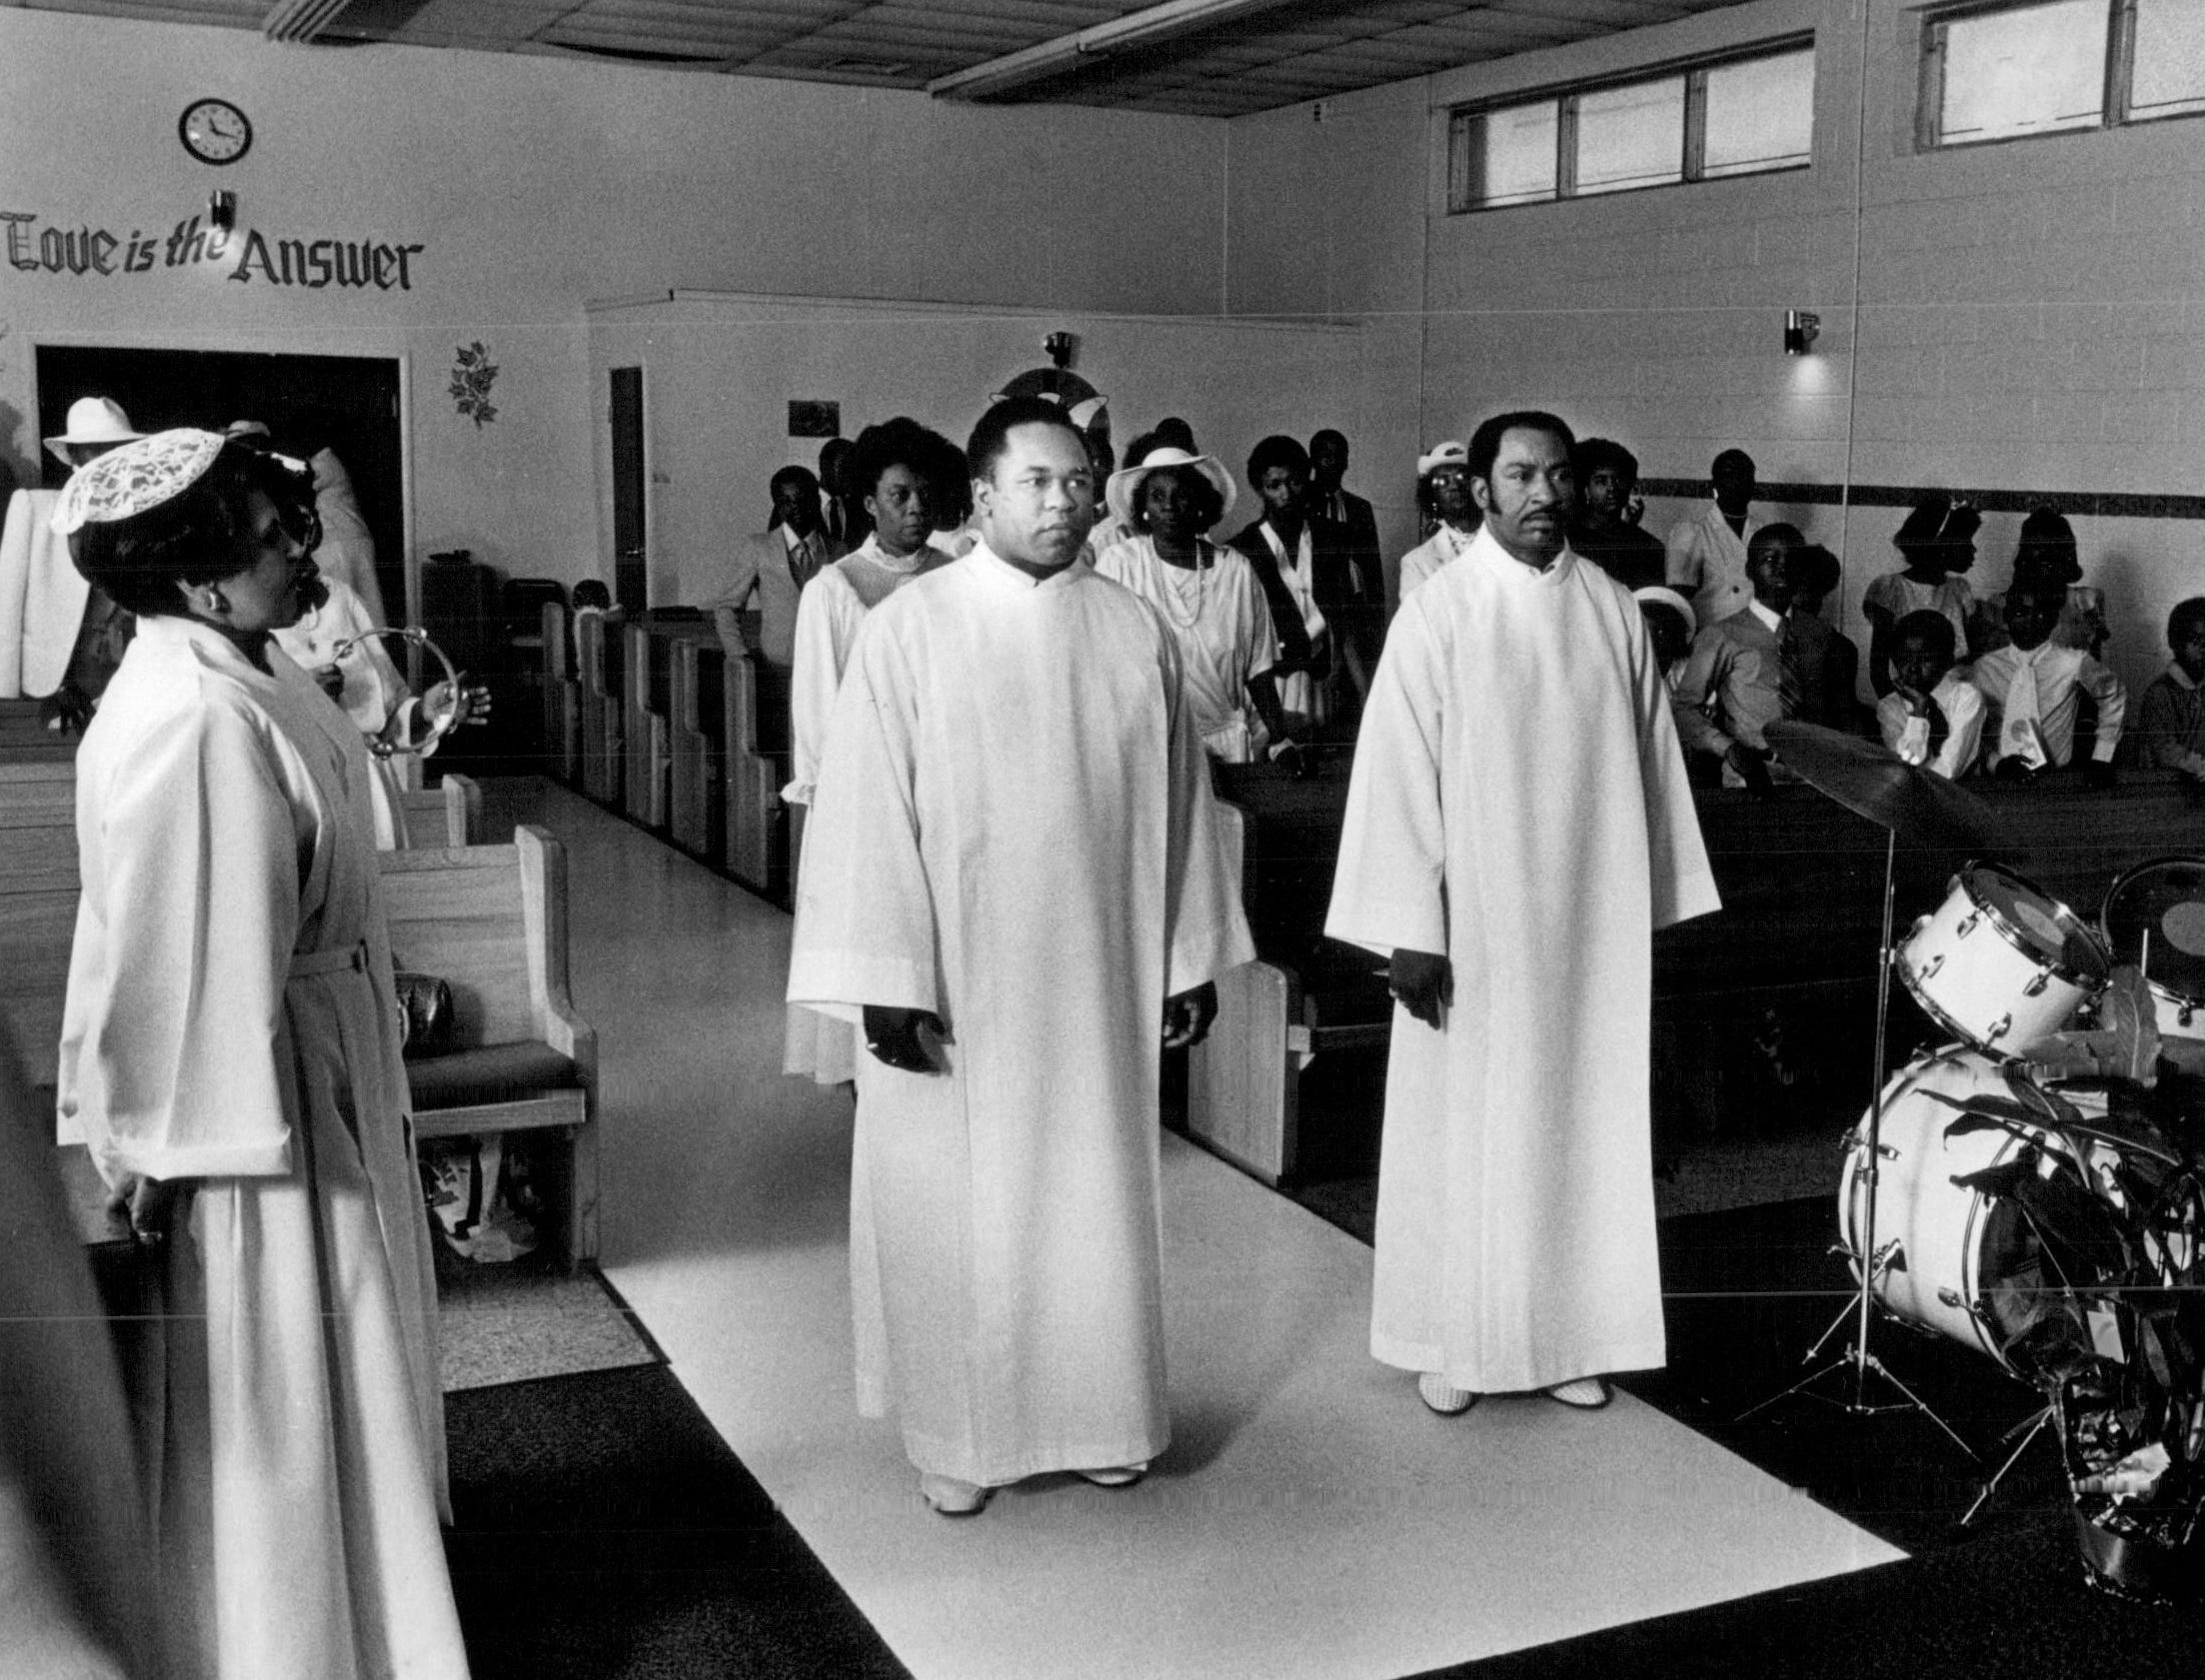 Minister Glenn King and church member Flodell Richardson proceed to the altar of First Church Divine as Easter Service begins in this 1985 photo.